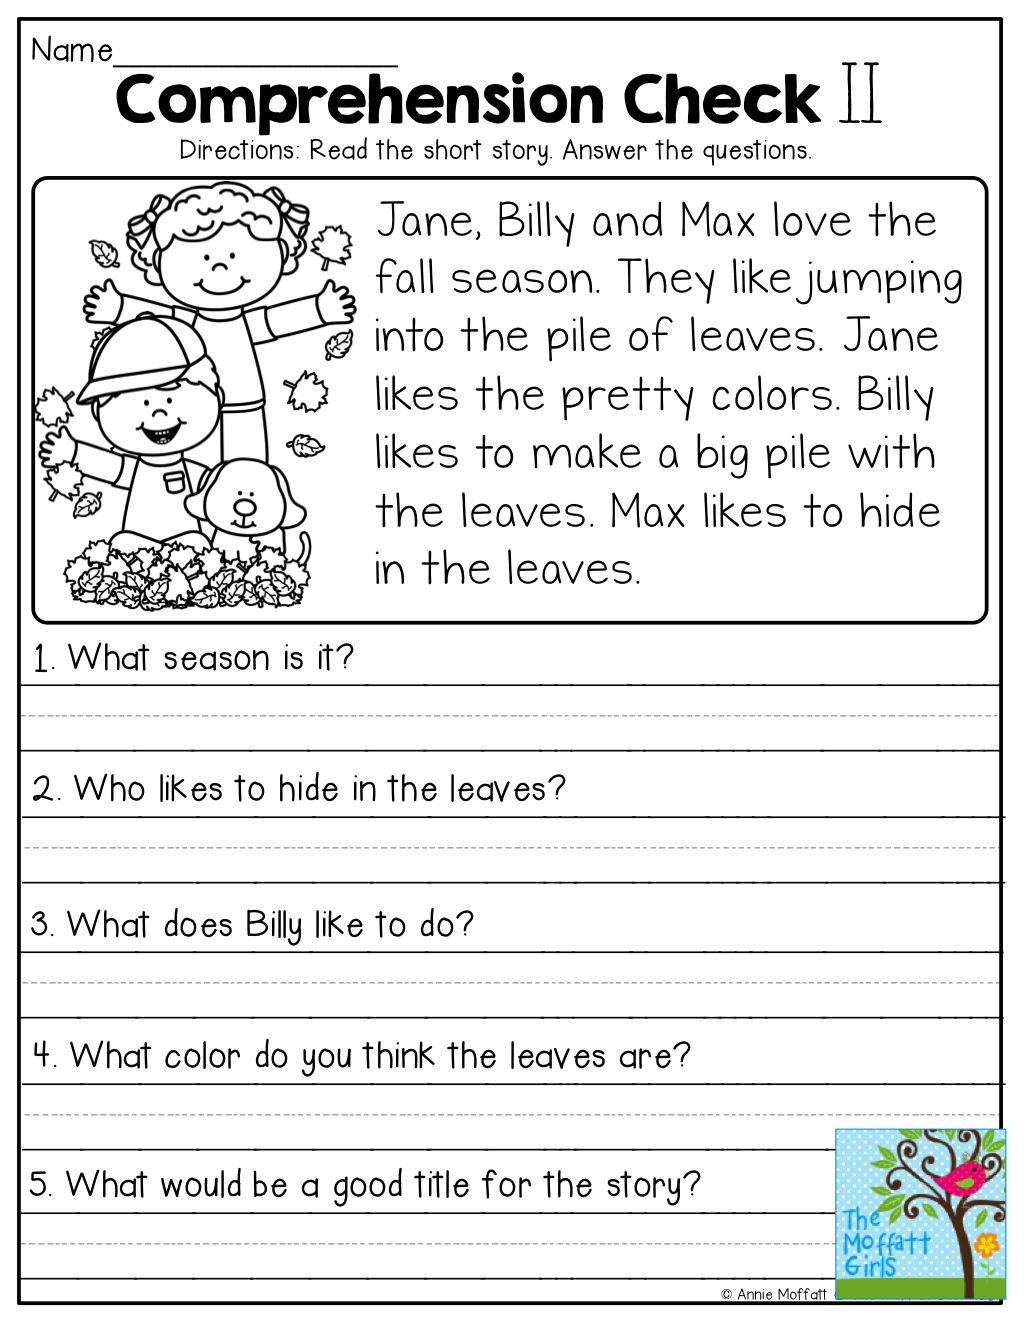 Worksheet. Reading Grade 1 Worksheets. Noconformity Free Worksheet